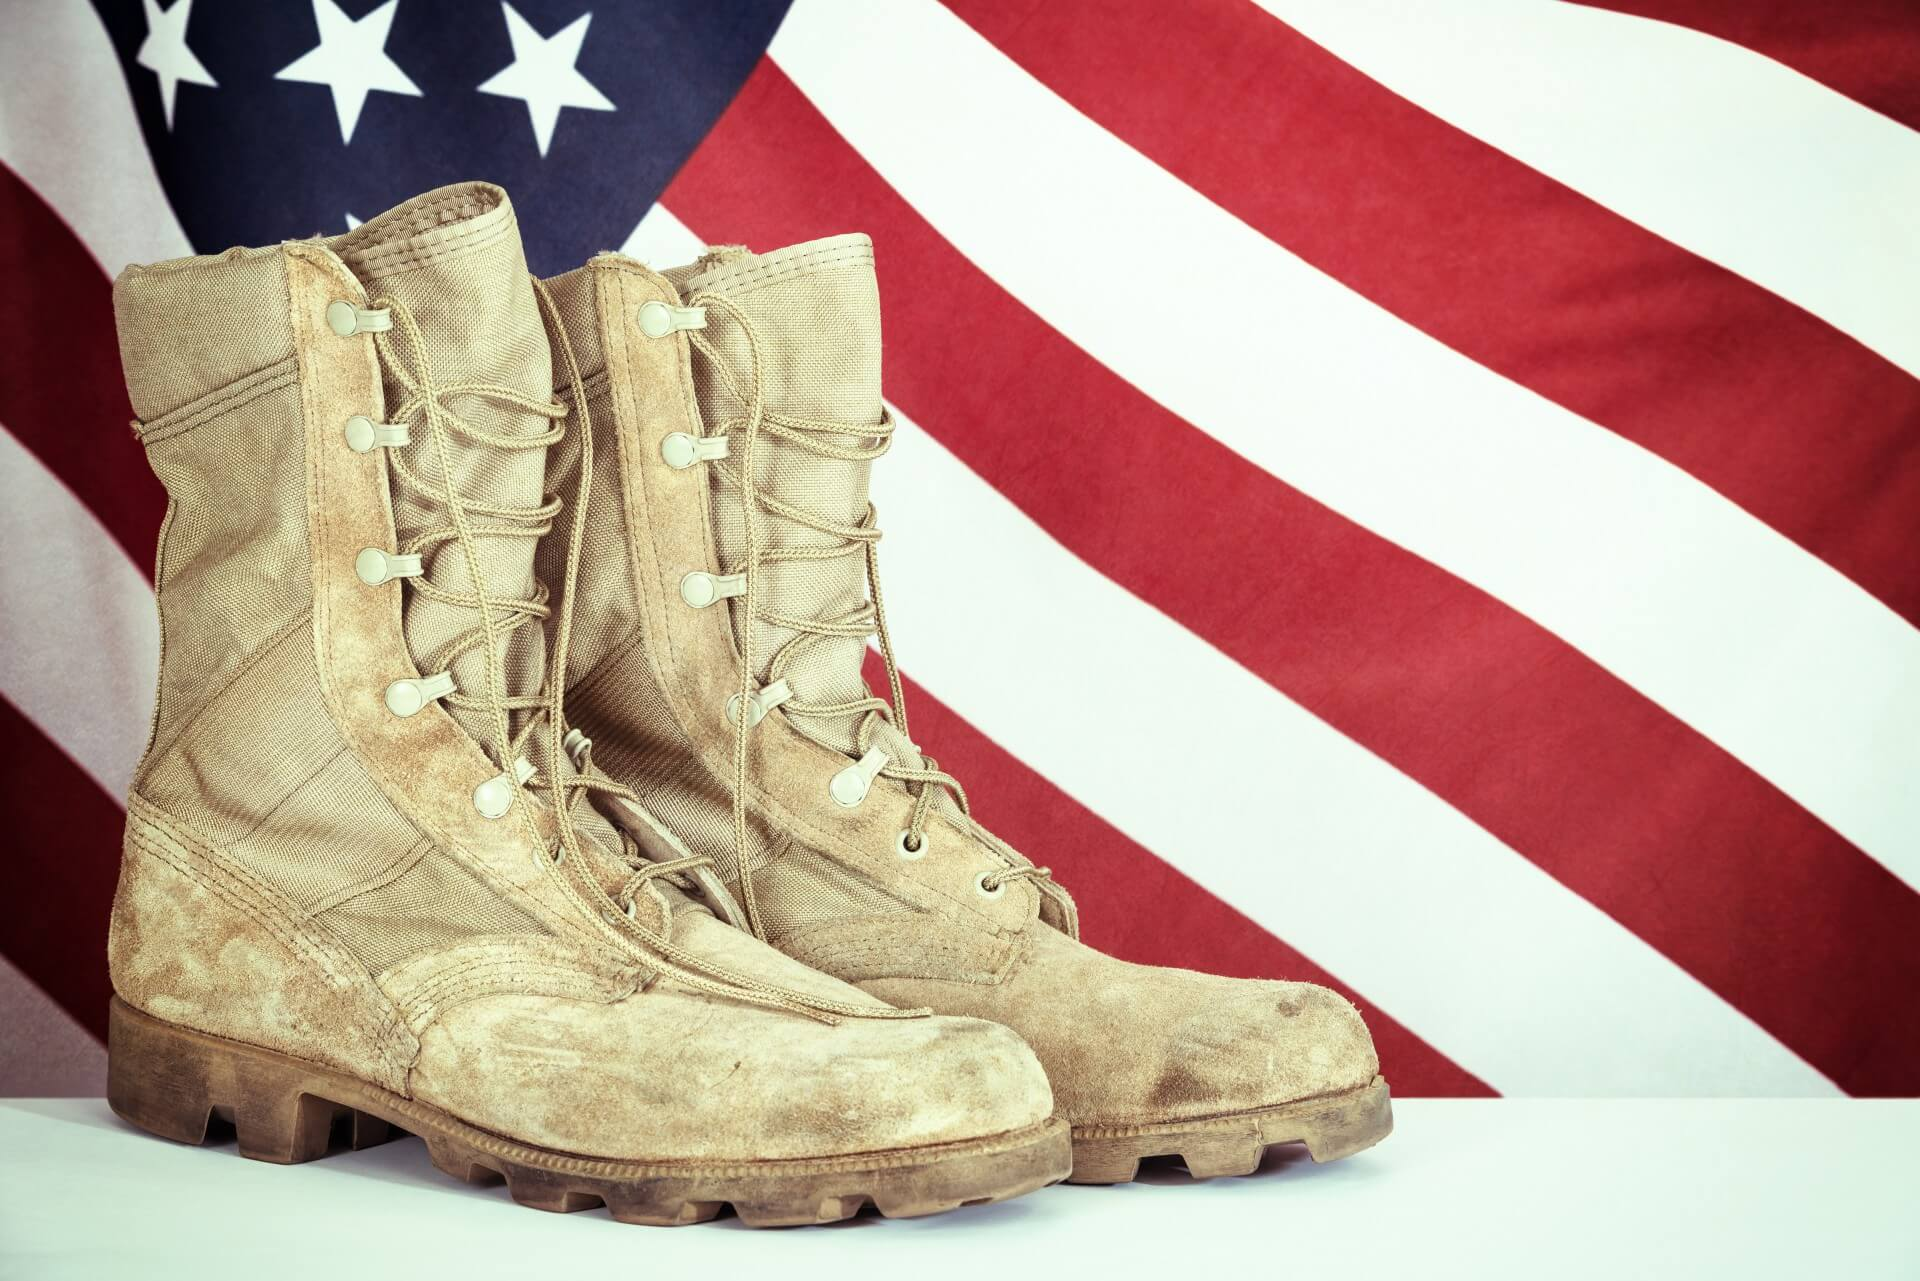 10% Off Military Service Coupon. See Shop for Details